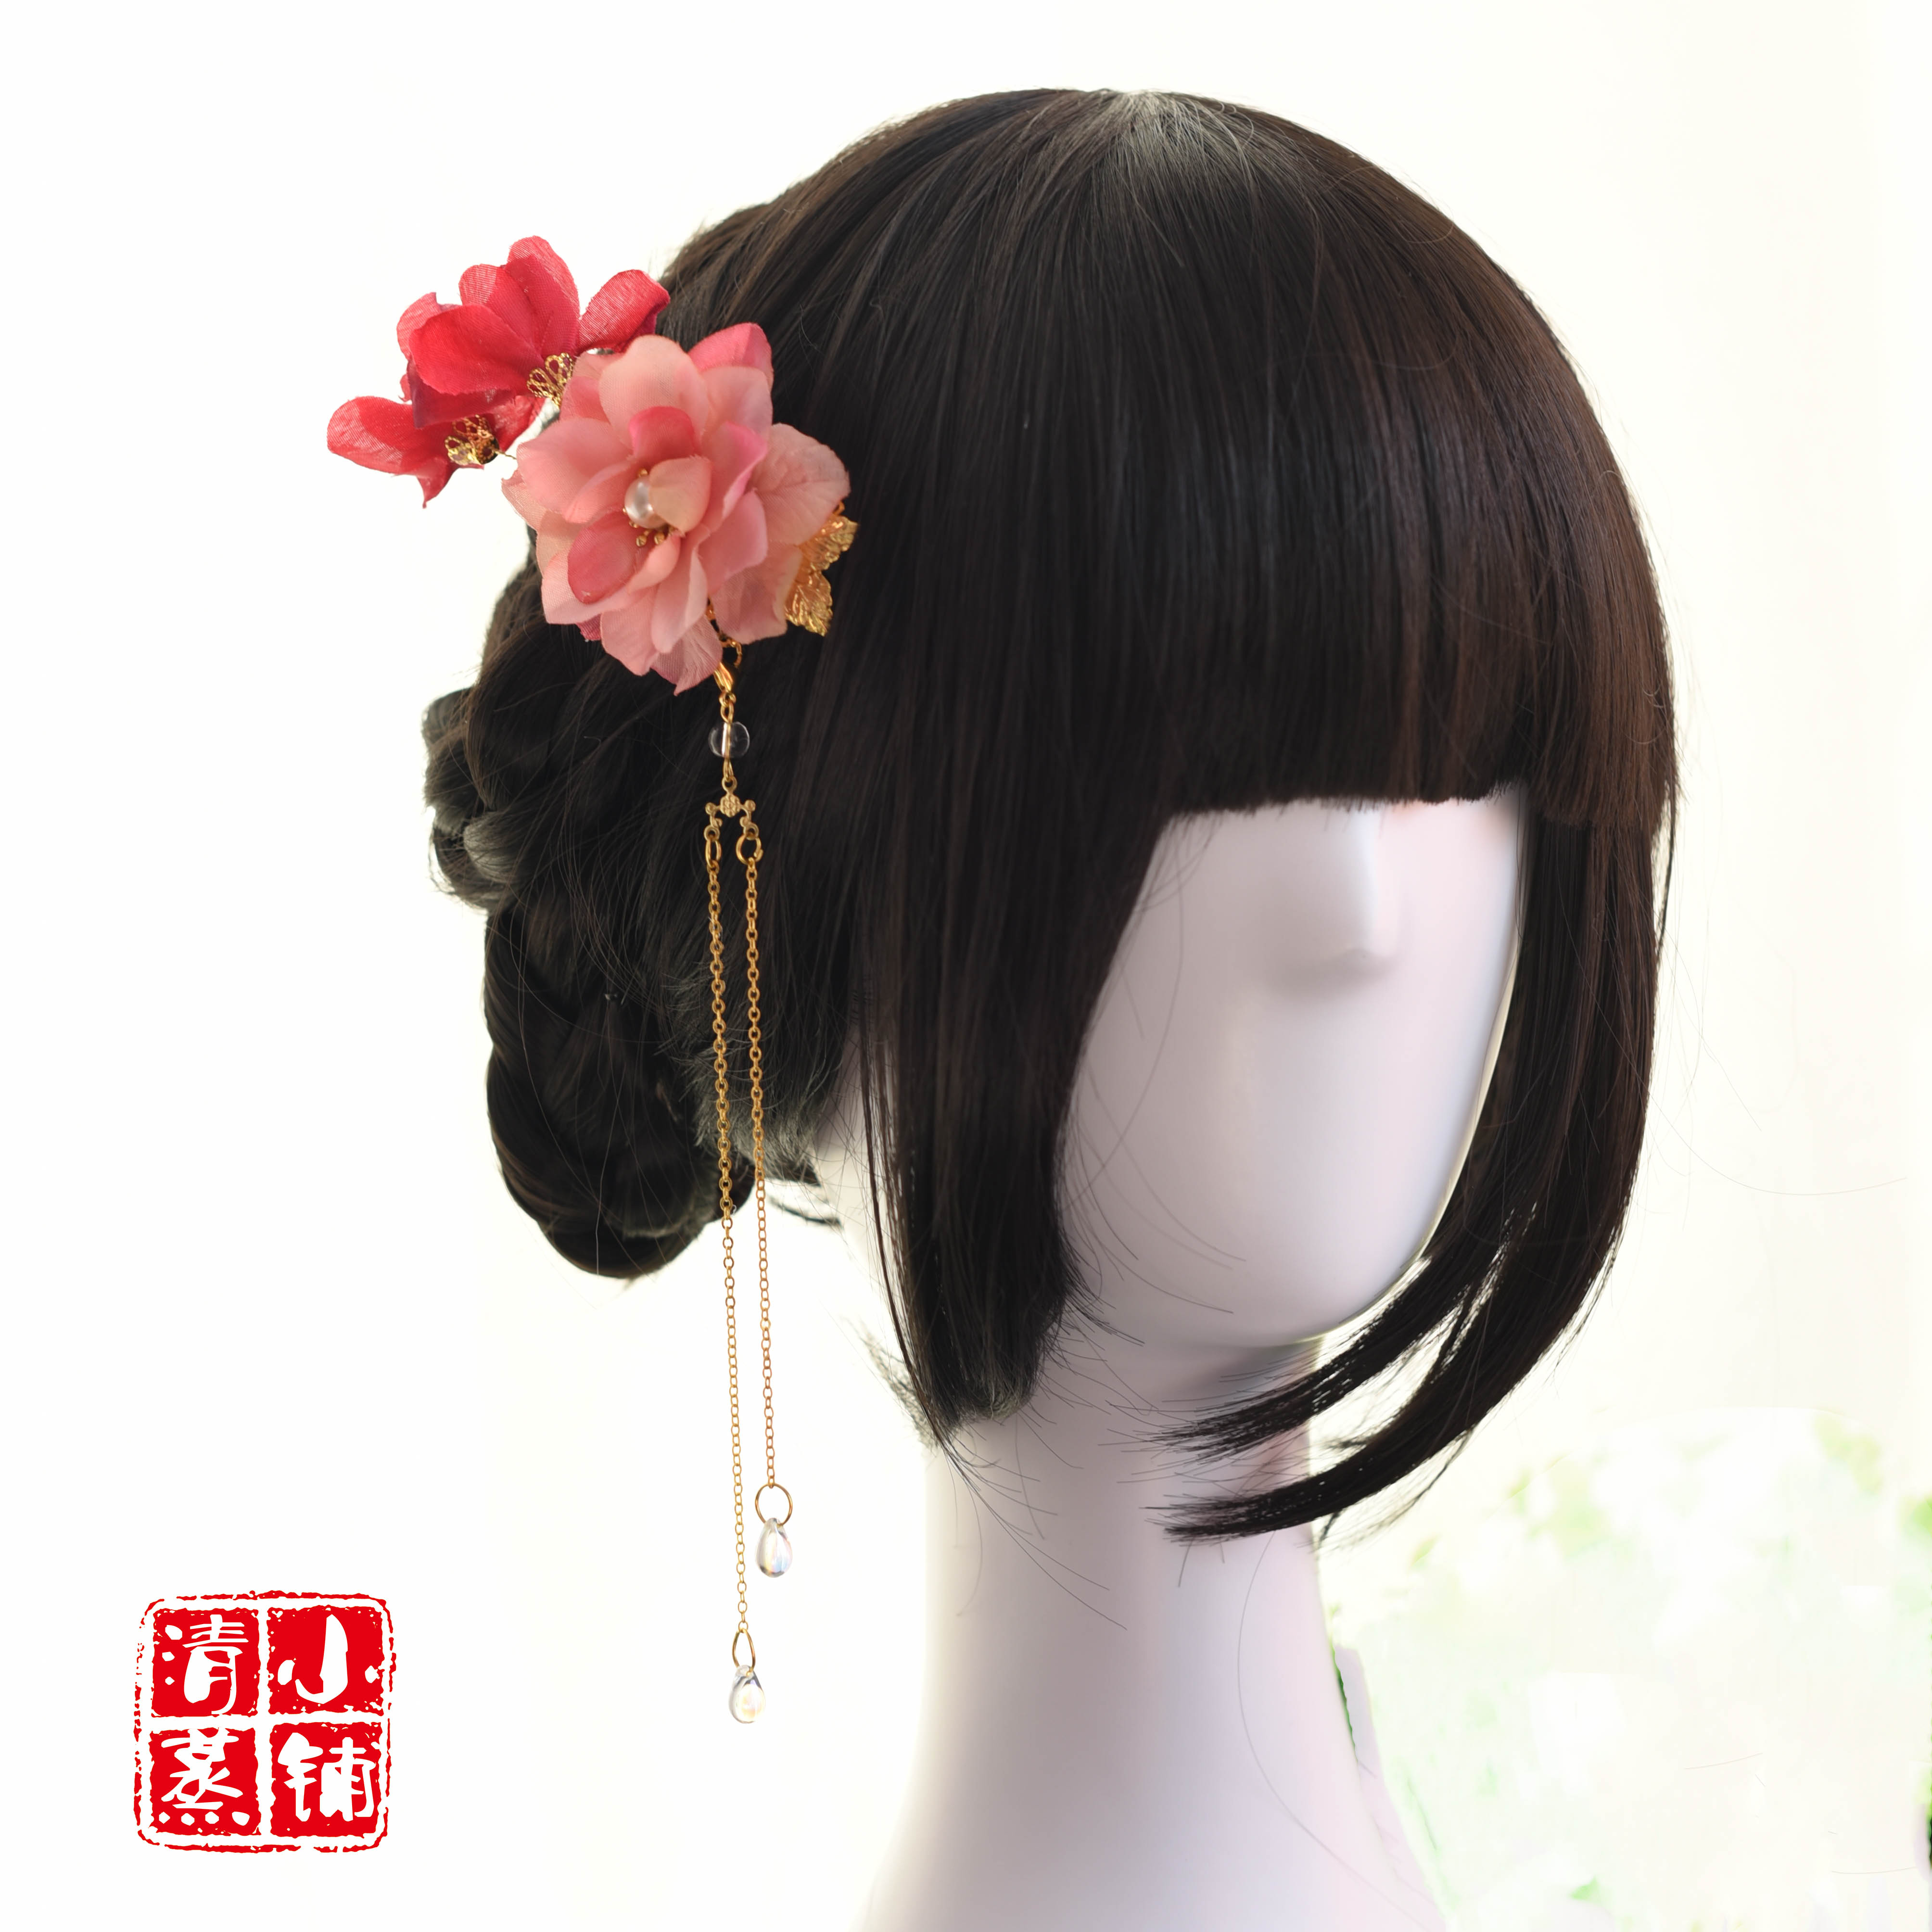 Usd 874 Steamed Tears Red Makeuporiginal Chinese Style Ancient